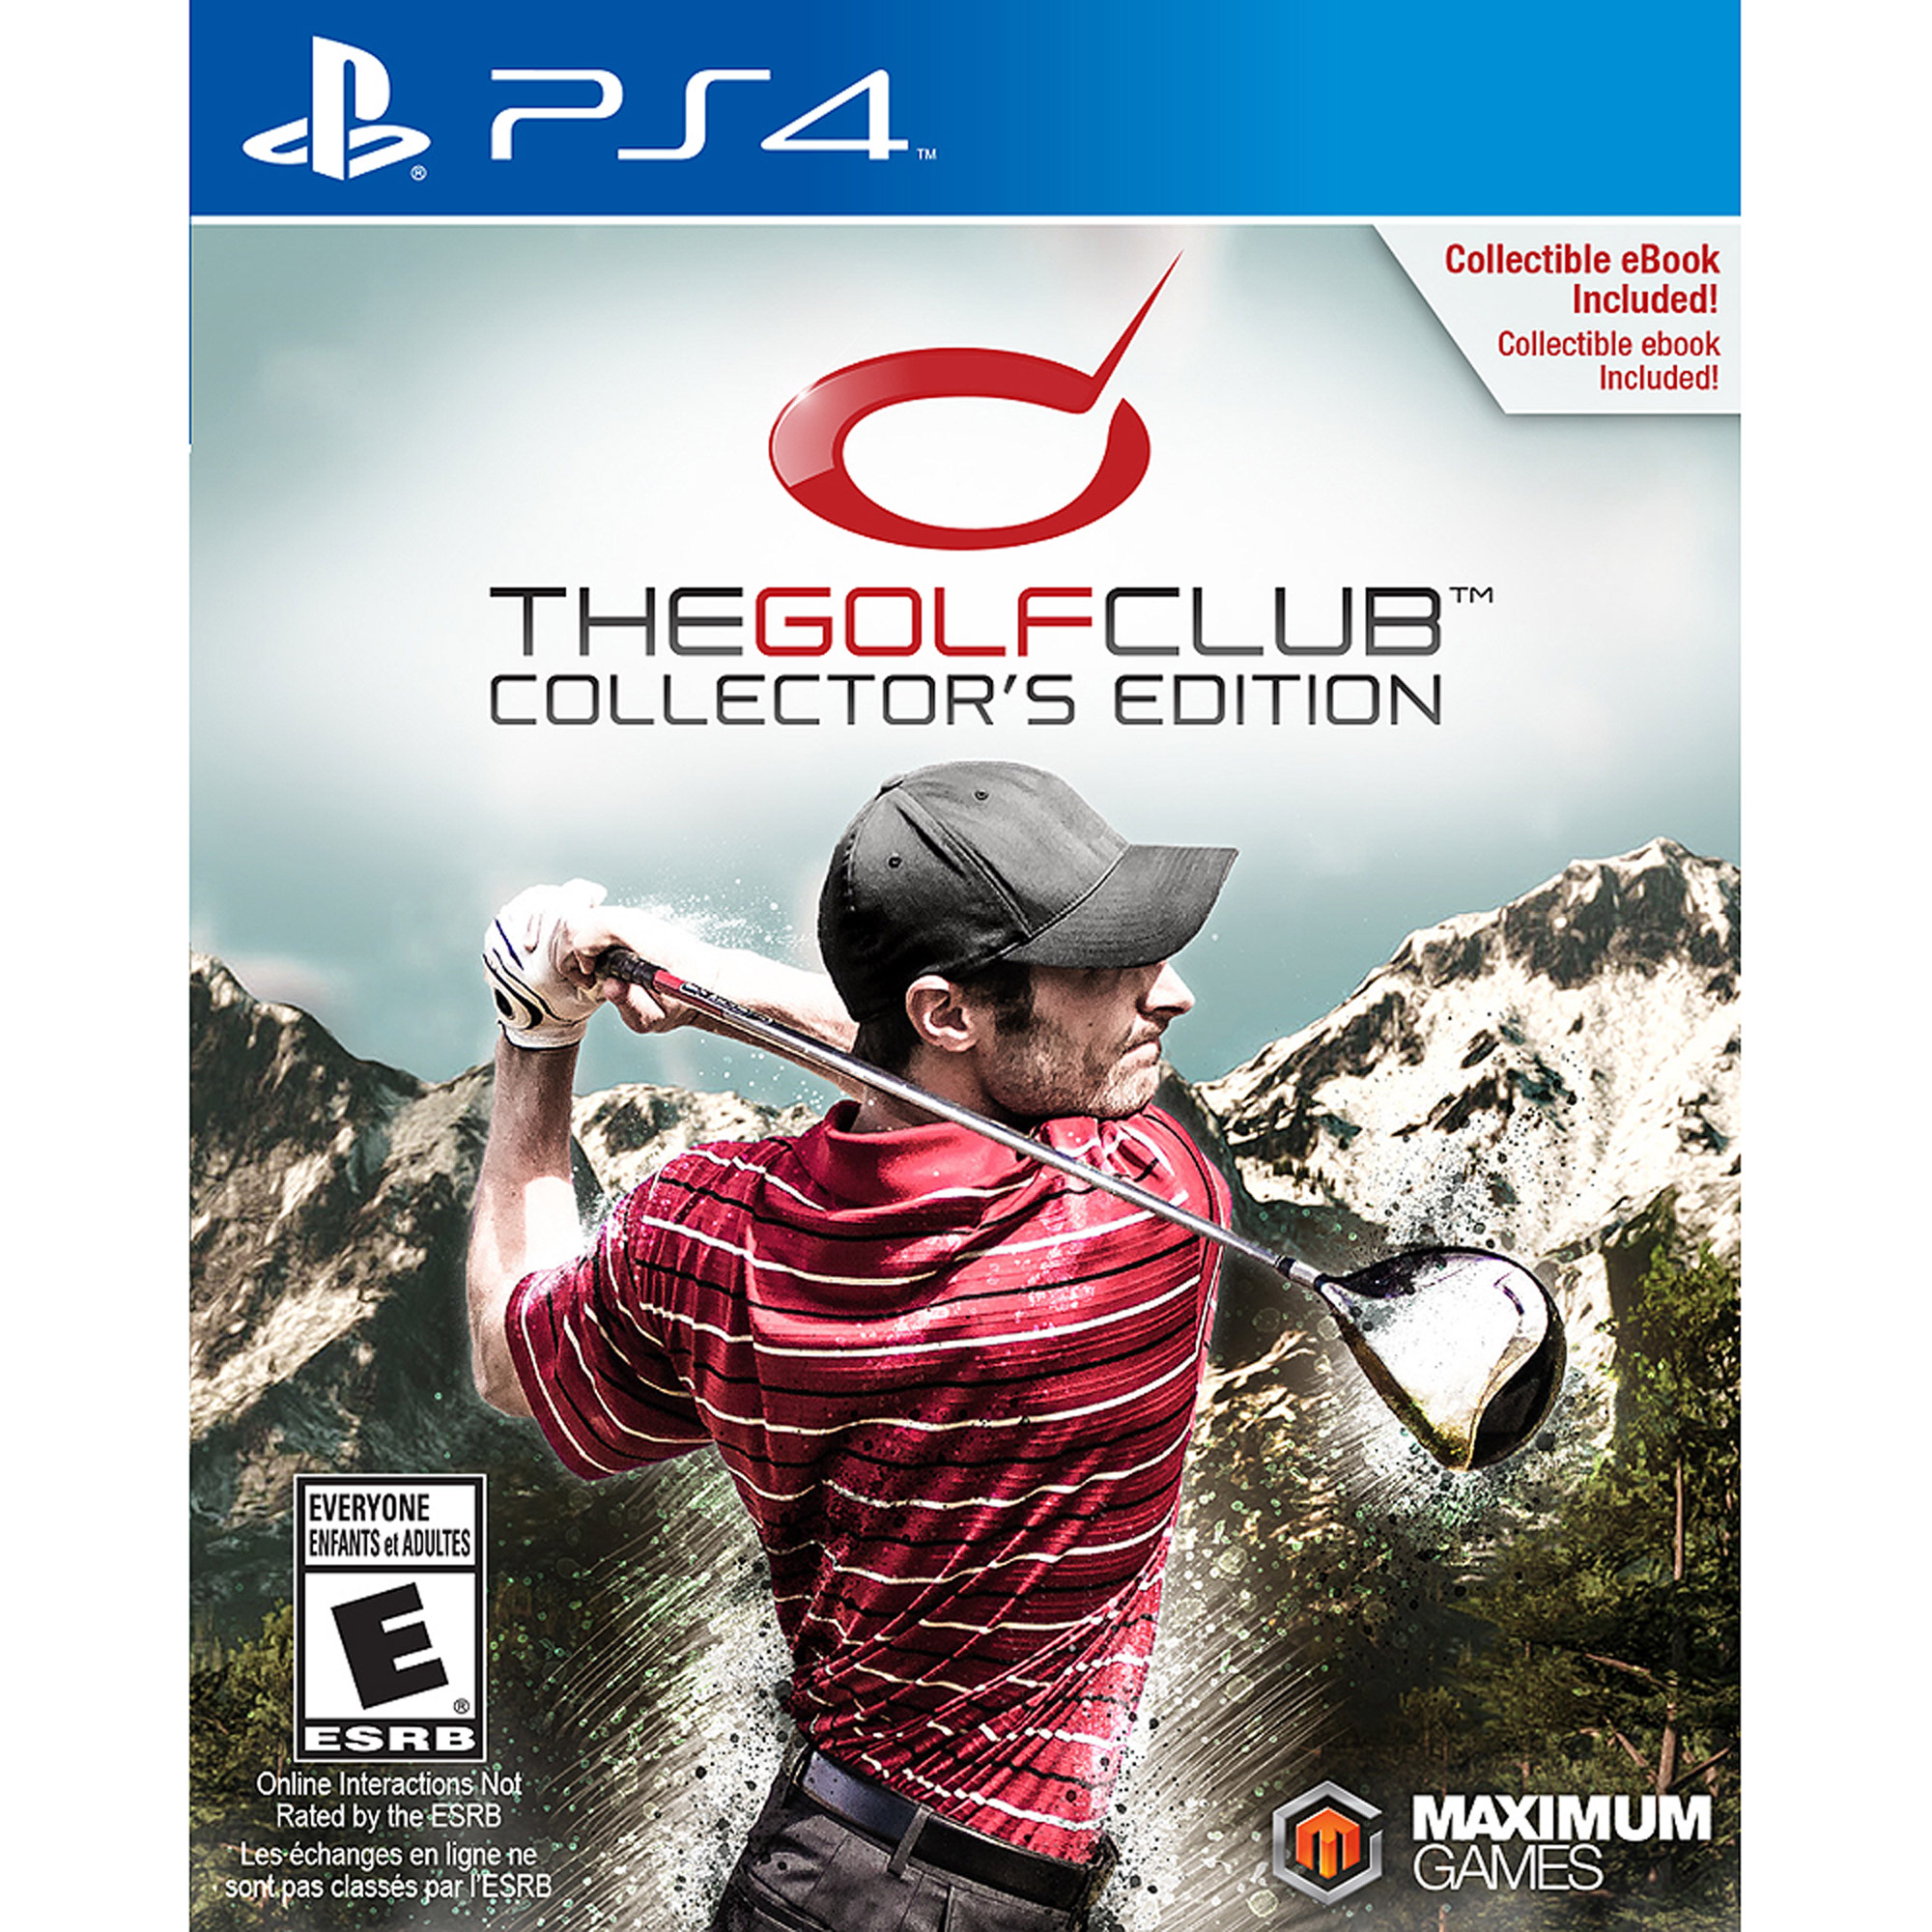 MAXIMUM GAMES Golf Club: Collector's Edition (PS4)